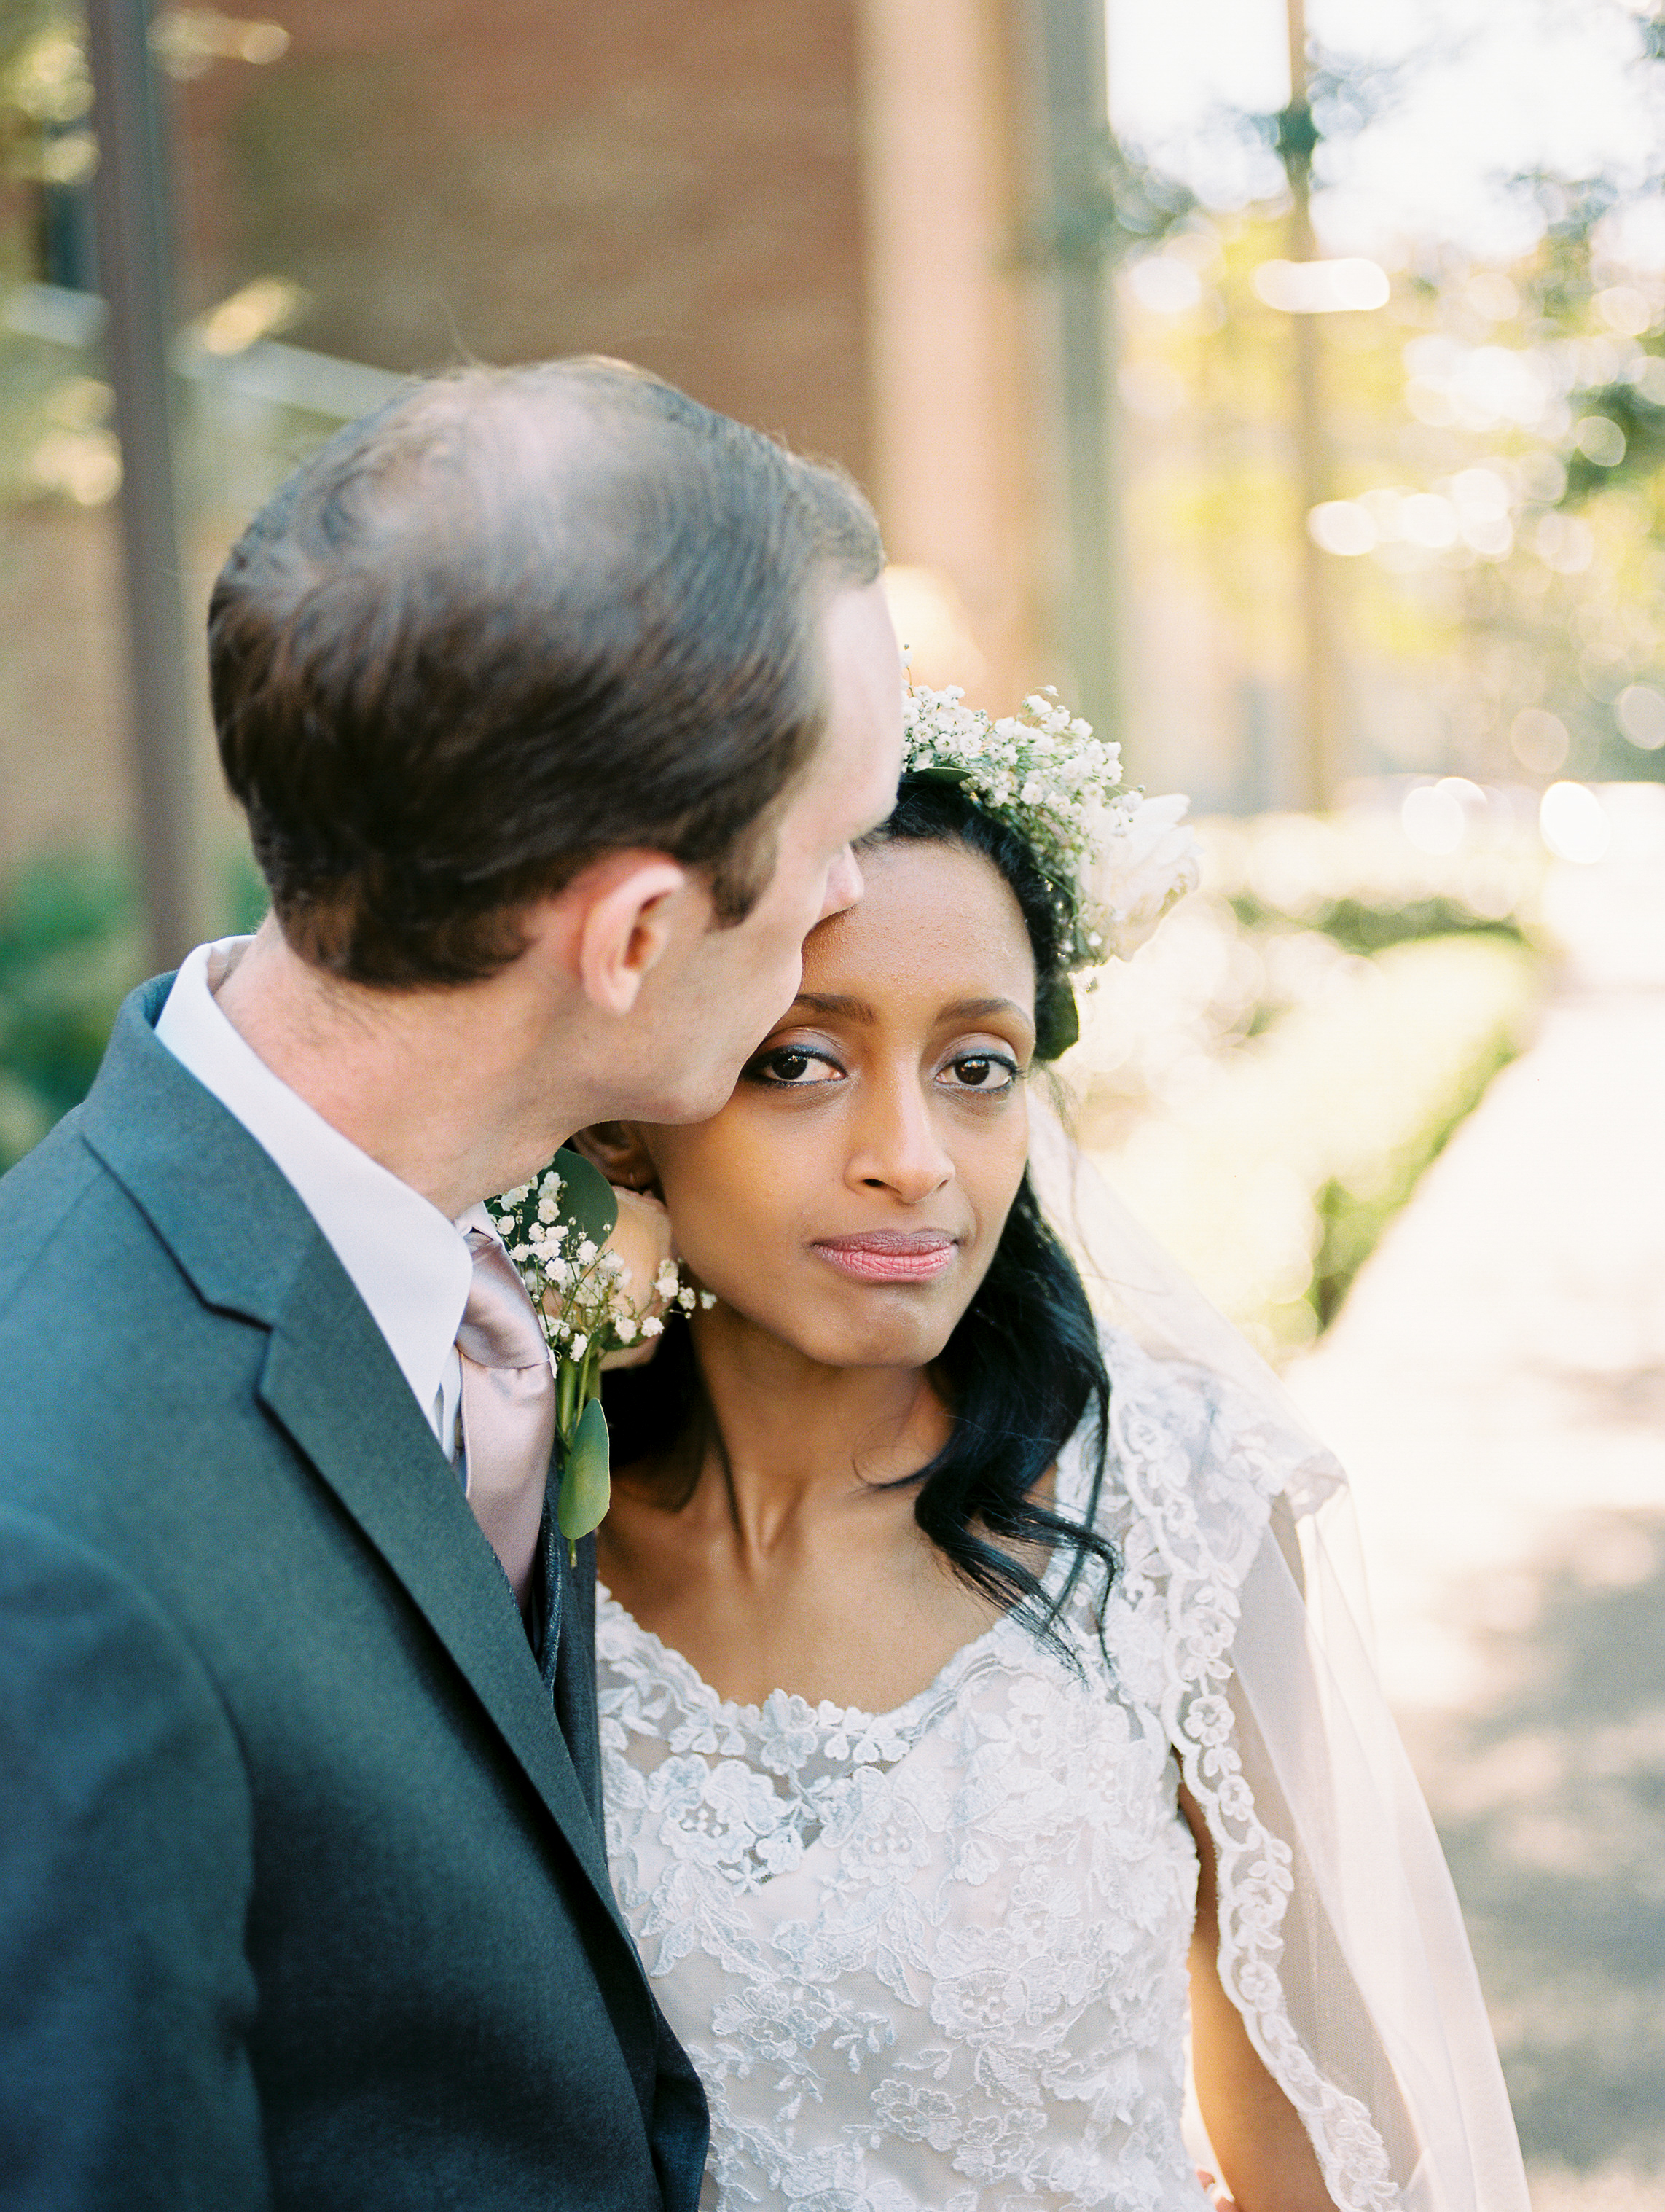 Tsega & Kenny - Wedding - Memphis, TN - © Kaitlyn Stoddard Photography -551.jpg